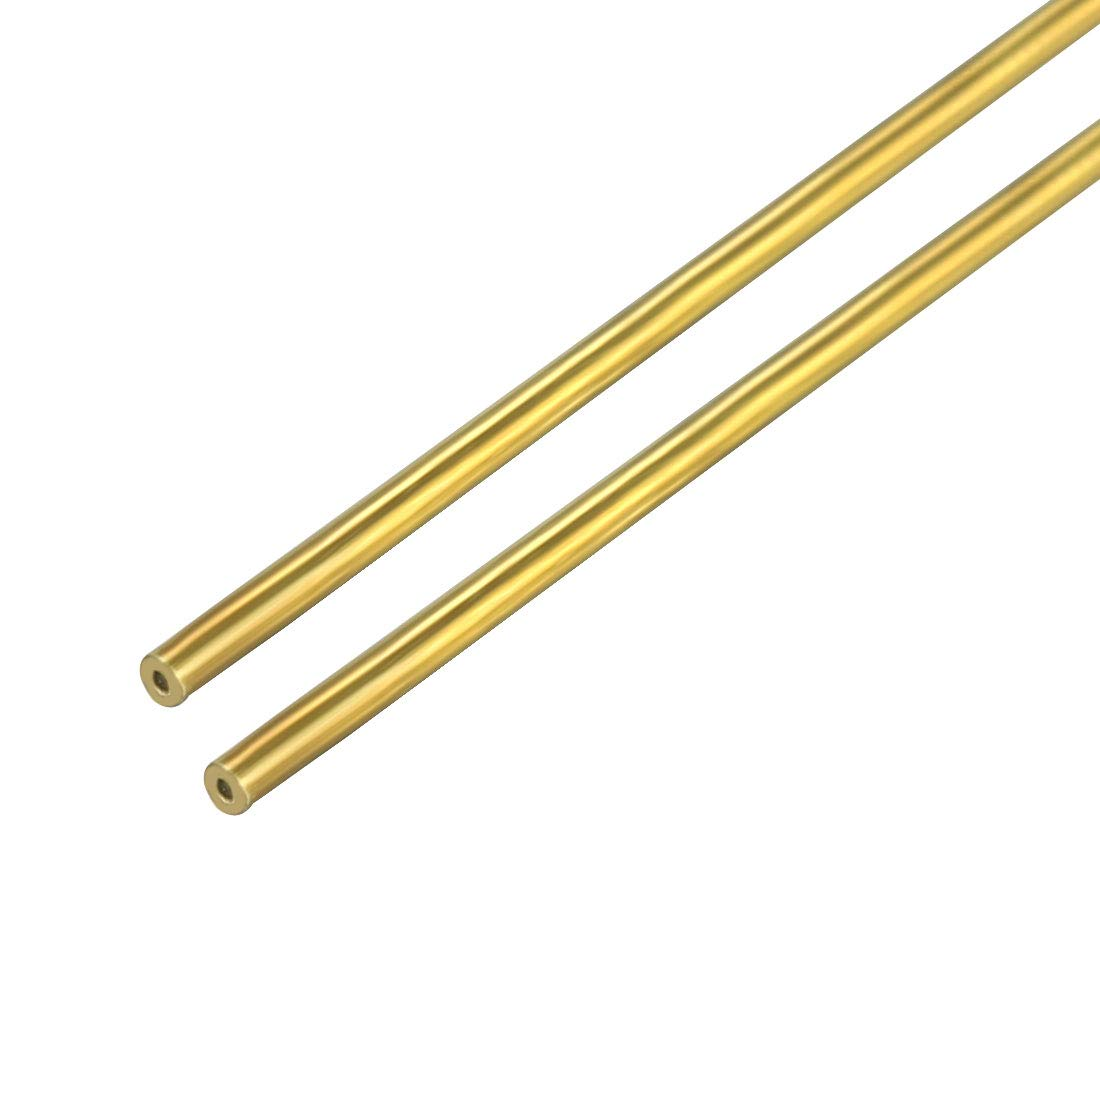 uxcell 8mm x 12mm x 500mm Brass Pipe Tube Round Bar Rod for RC Boat